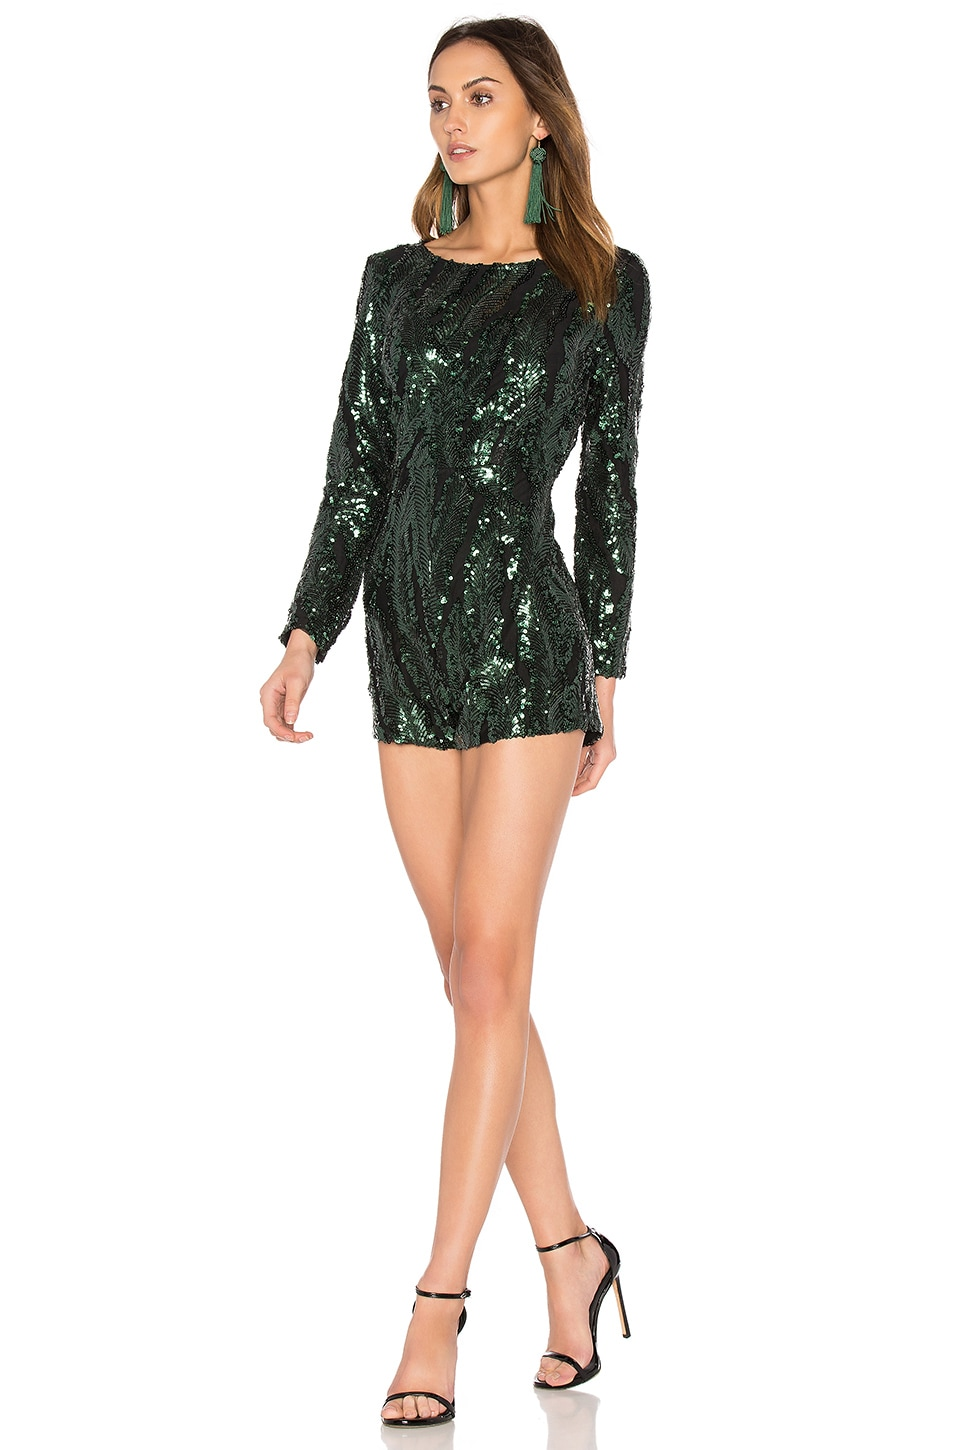 WYLDR All Night Long Playsuit in Green Sequin